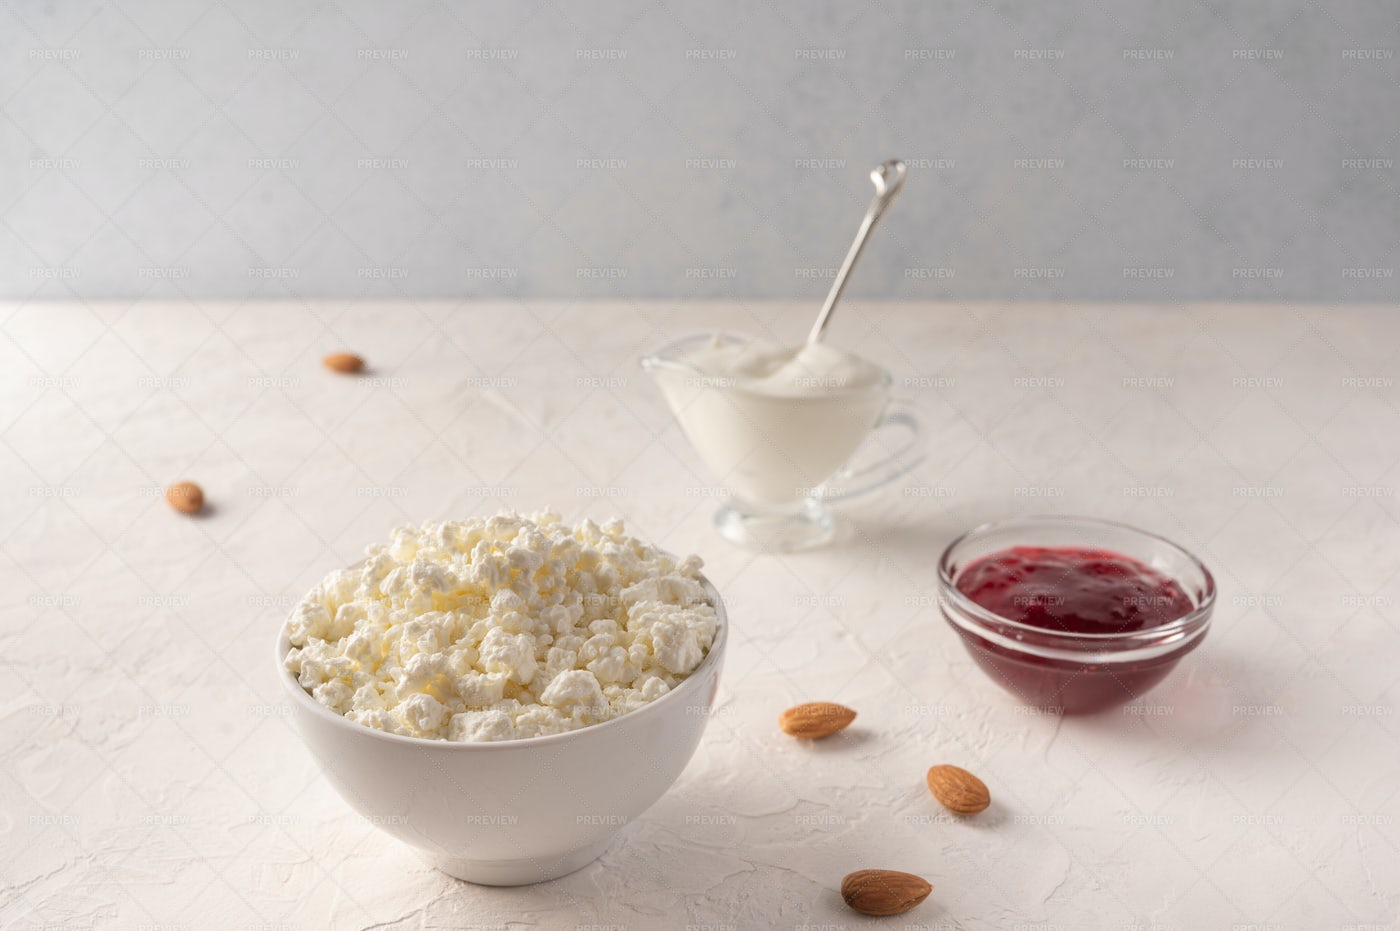 Bowl Of Cottage Cheese: Stock Photos